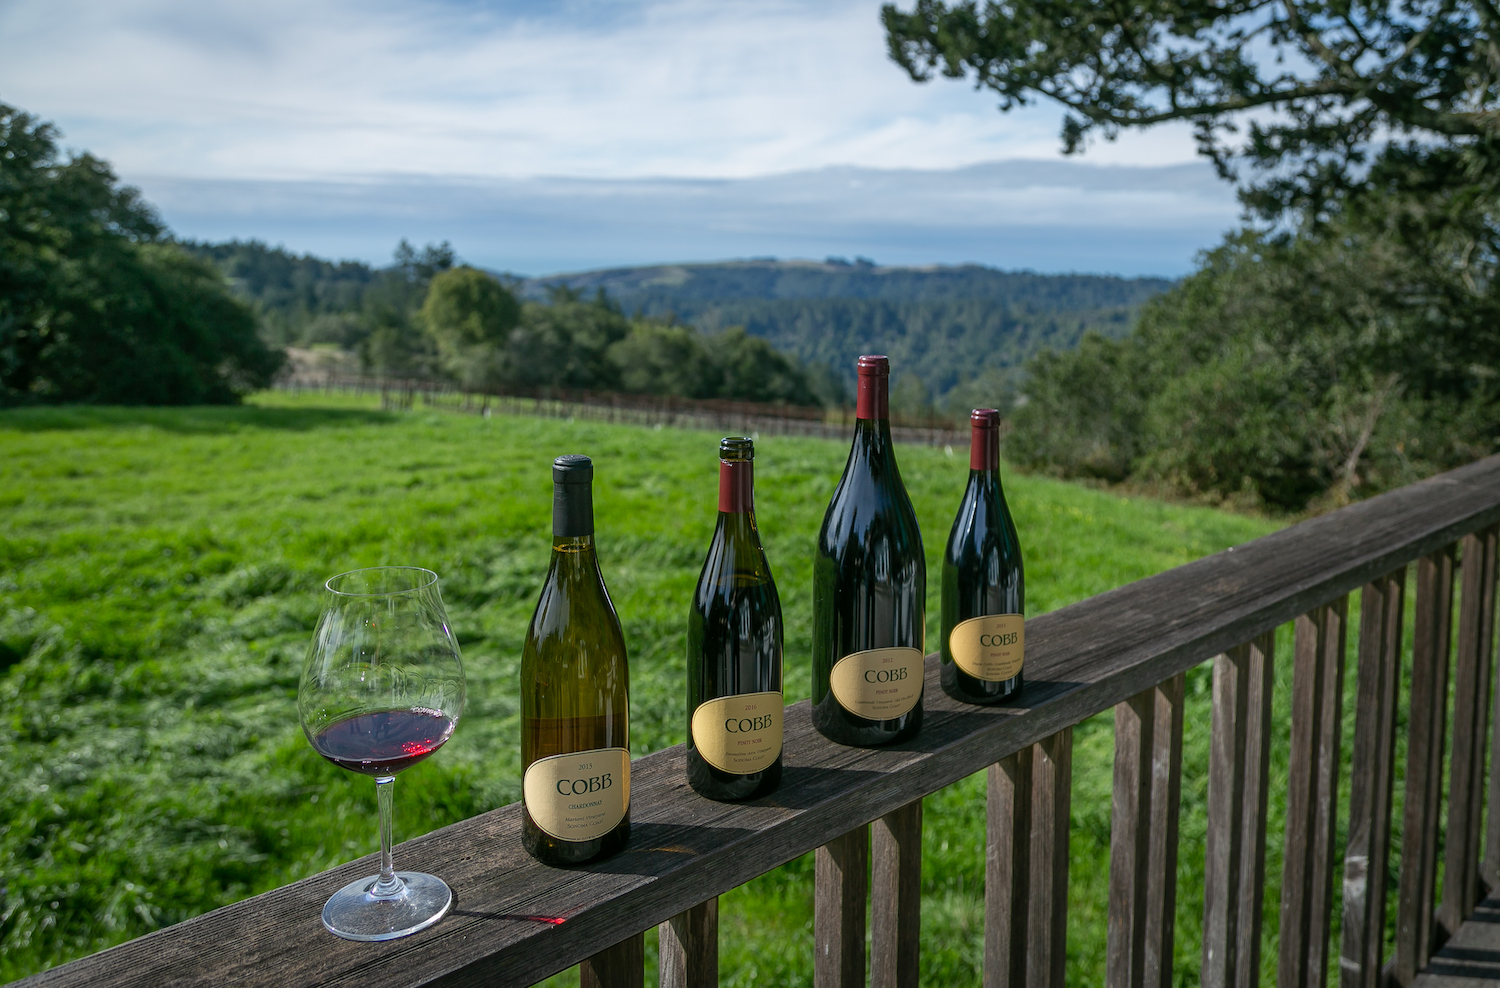 Cobb, Cobb winery, Occidental winery, Pinto Noir, Pinot Noir tasting, The Press